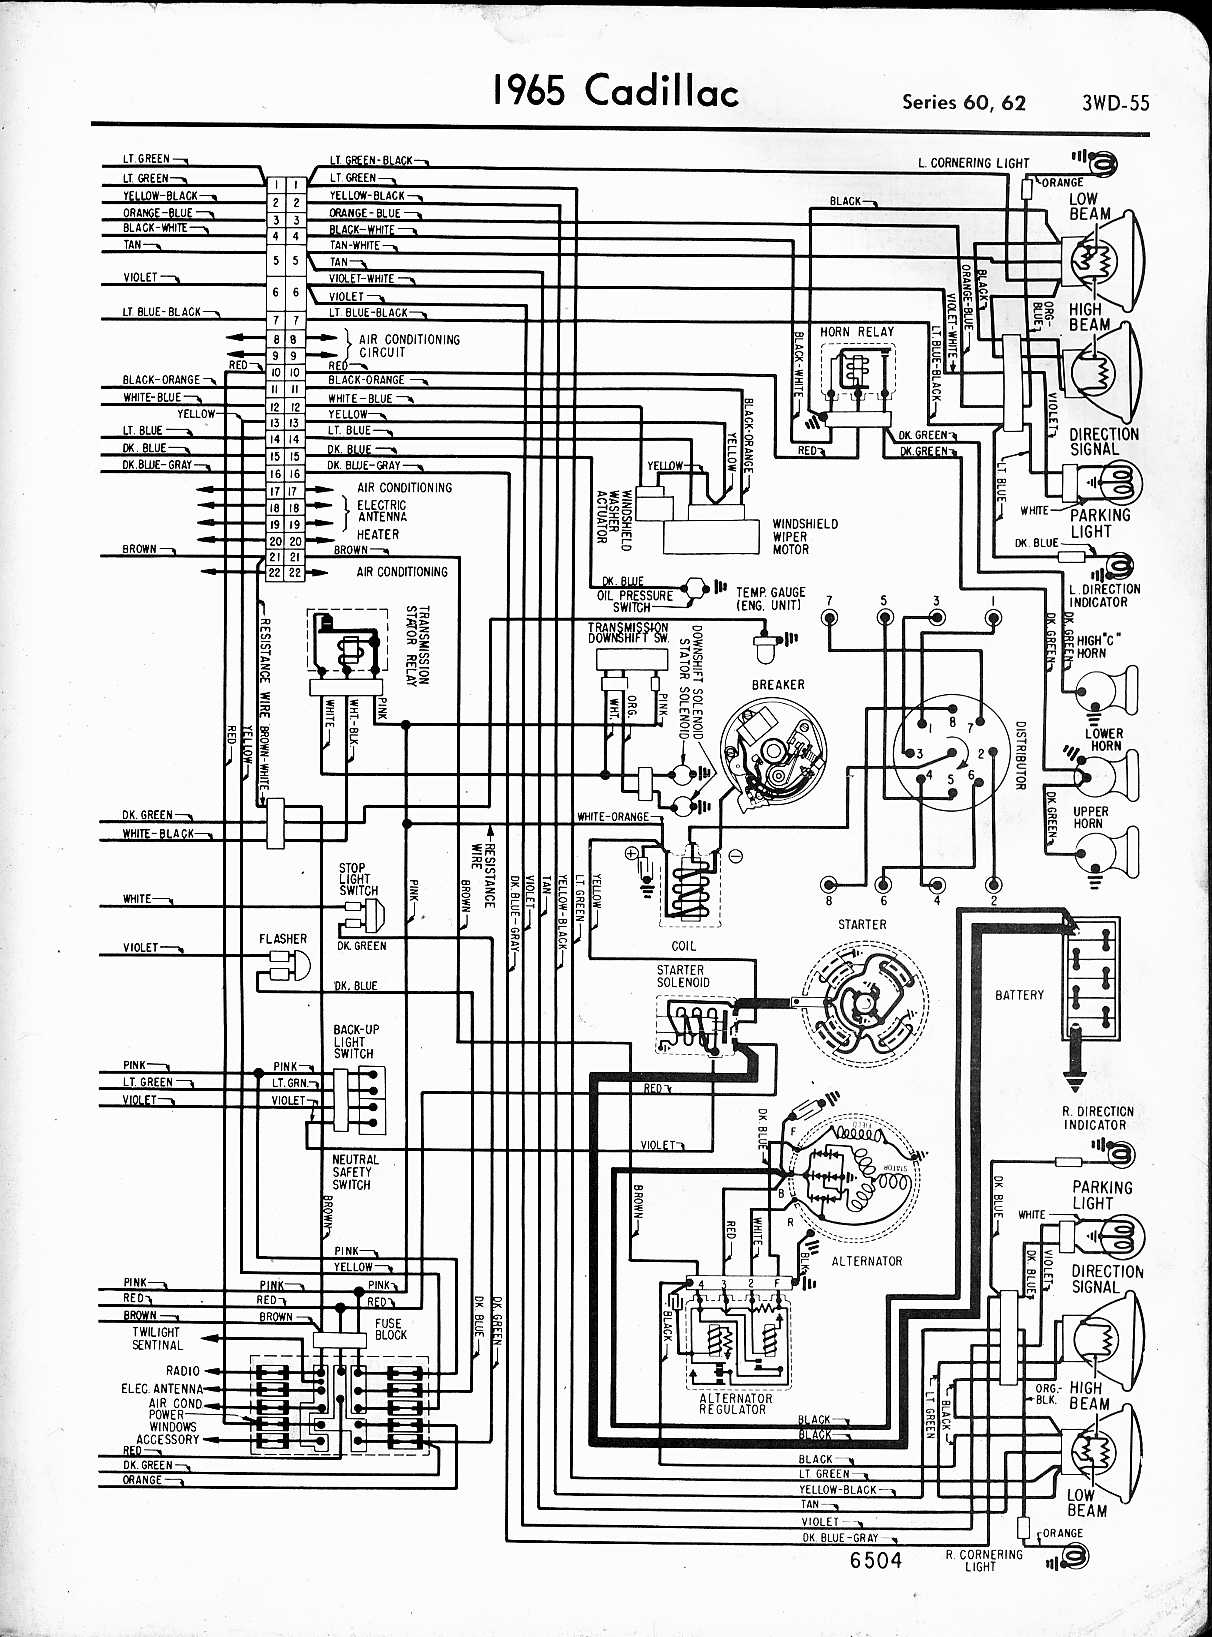 1999 Eldorado Wiring Diagram Schematics E 450 Fuse Panel 1984 Cadillac Another Blog About Home